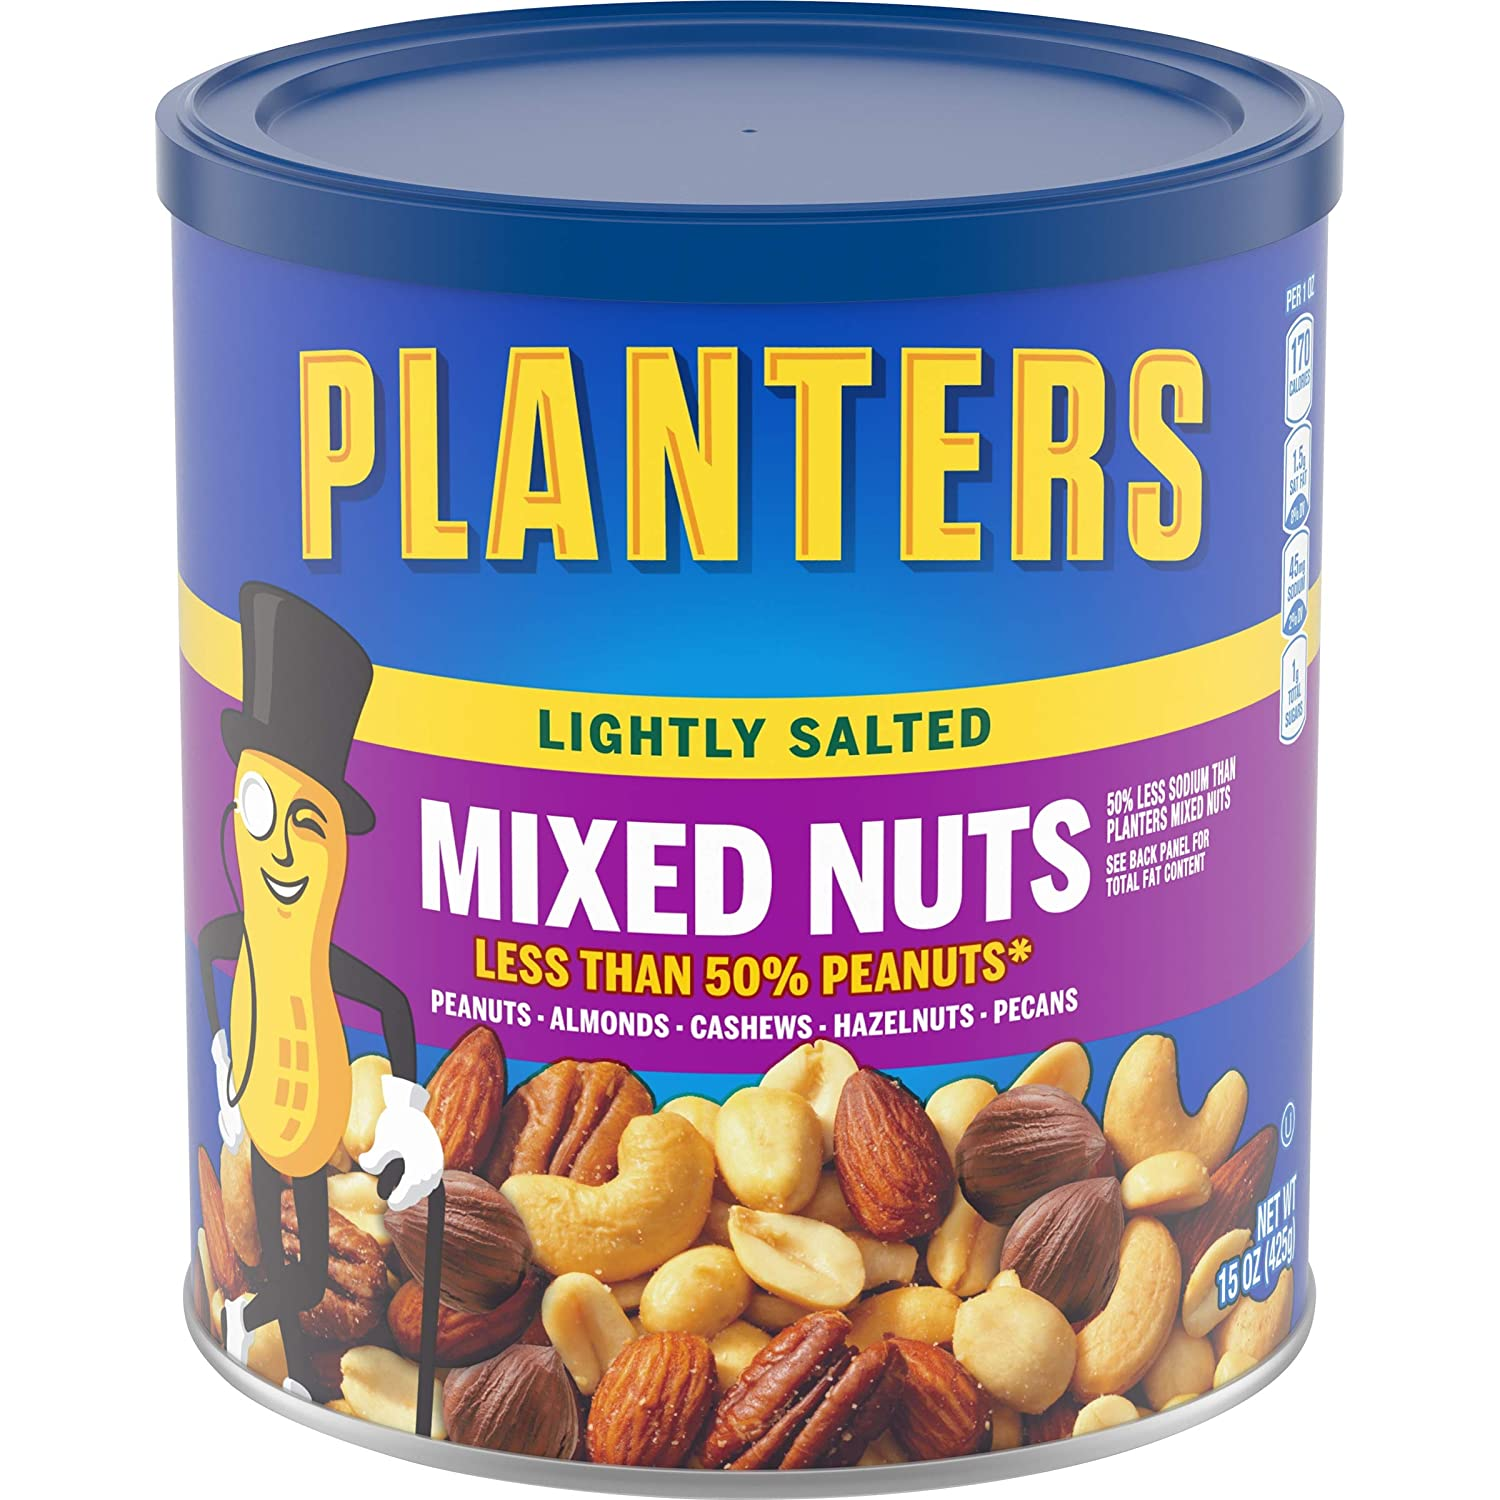 Planters Lightly Salted Mixed Great interest Nuts List price 15 Can oz